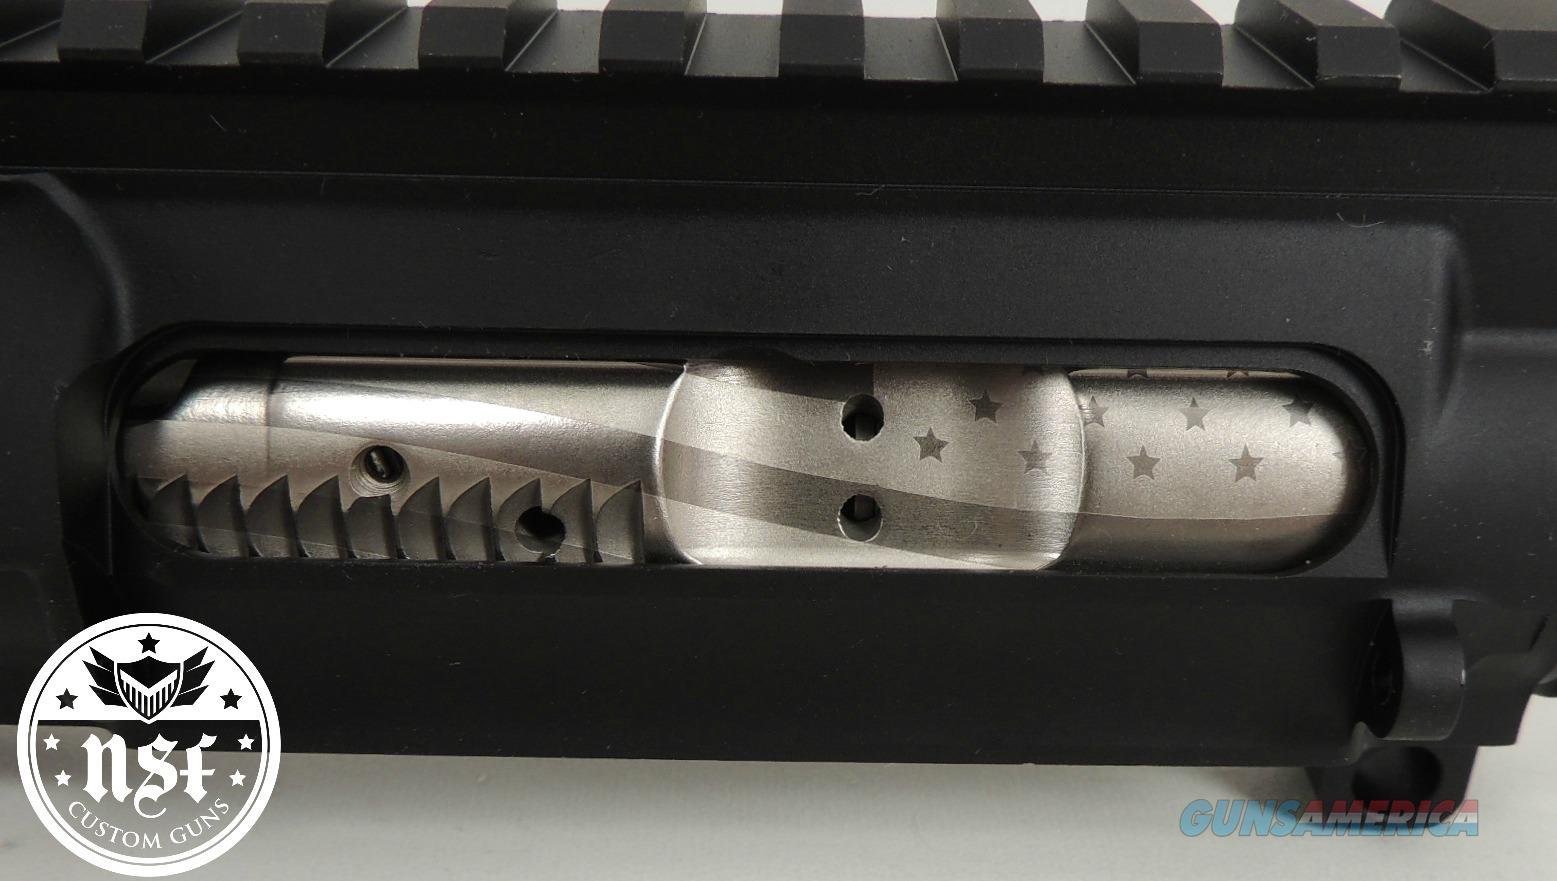 NSF Custom Guns 5.56 Nickel Boron Coated Bolt Carrier Group with Flag Engraving  Non-Guns > Gun Parts > M16-AR15 > Upper Only